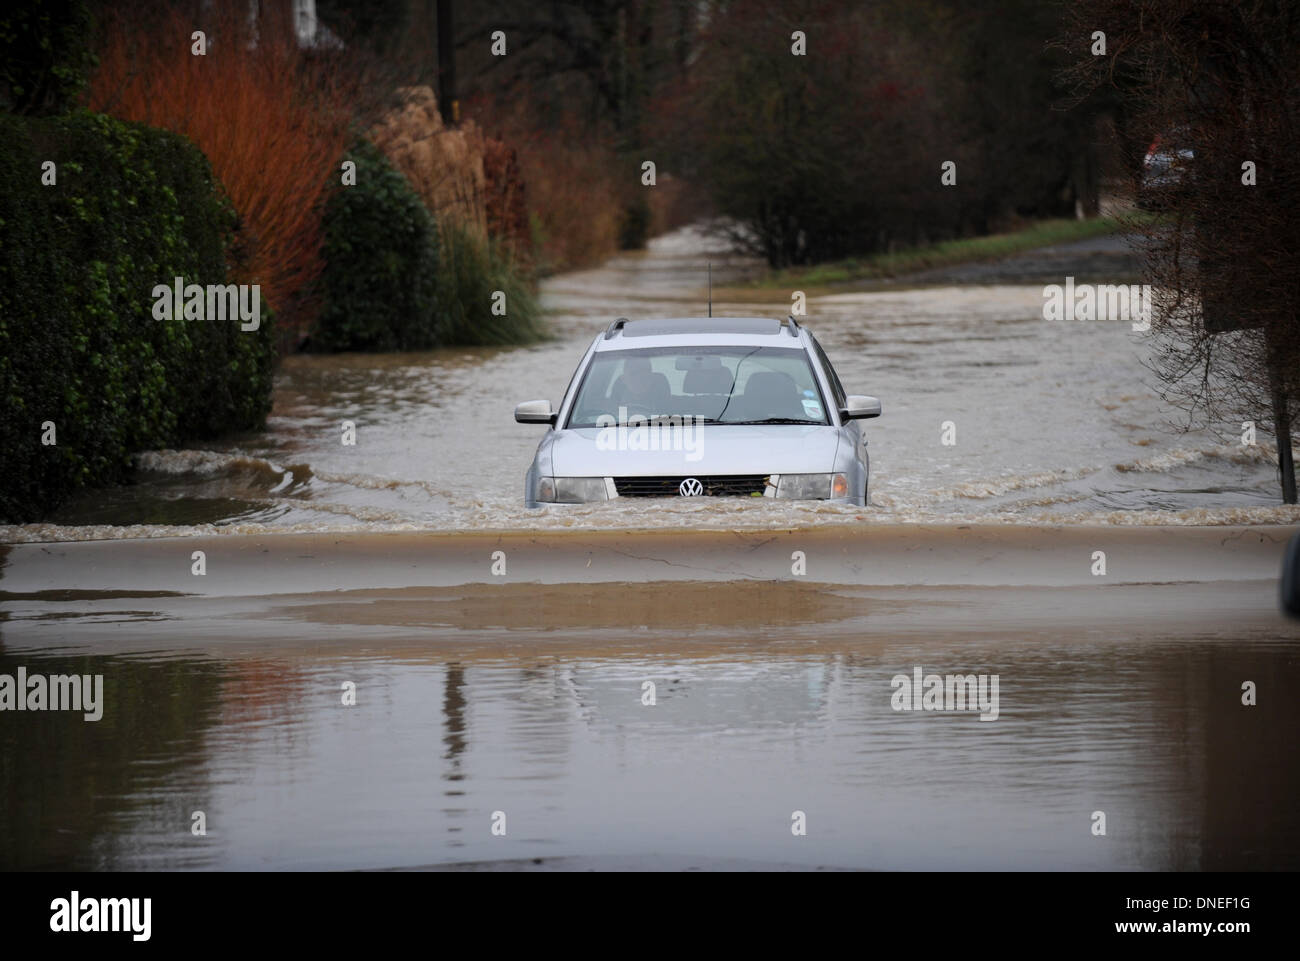 A car drives through flooded roads around the village of Barcombe near Lewes Sussex UK - Stock Image